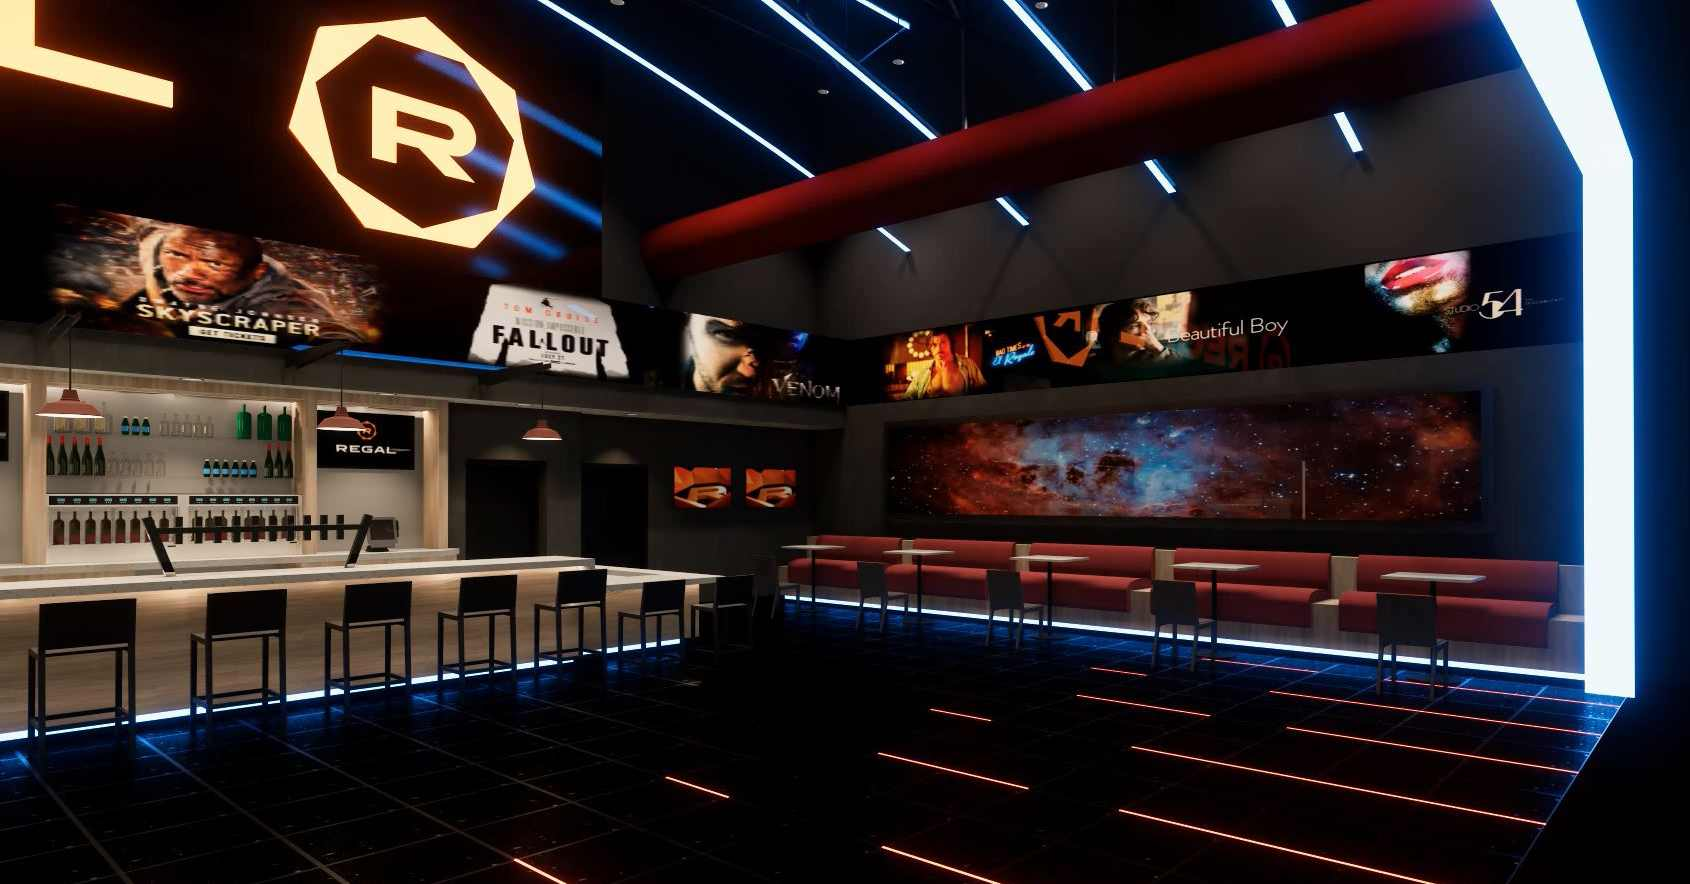 Get the Details on Crossgates' Upcoming Regal Cinemas Renovation